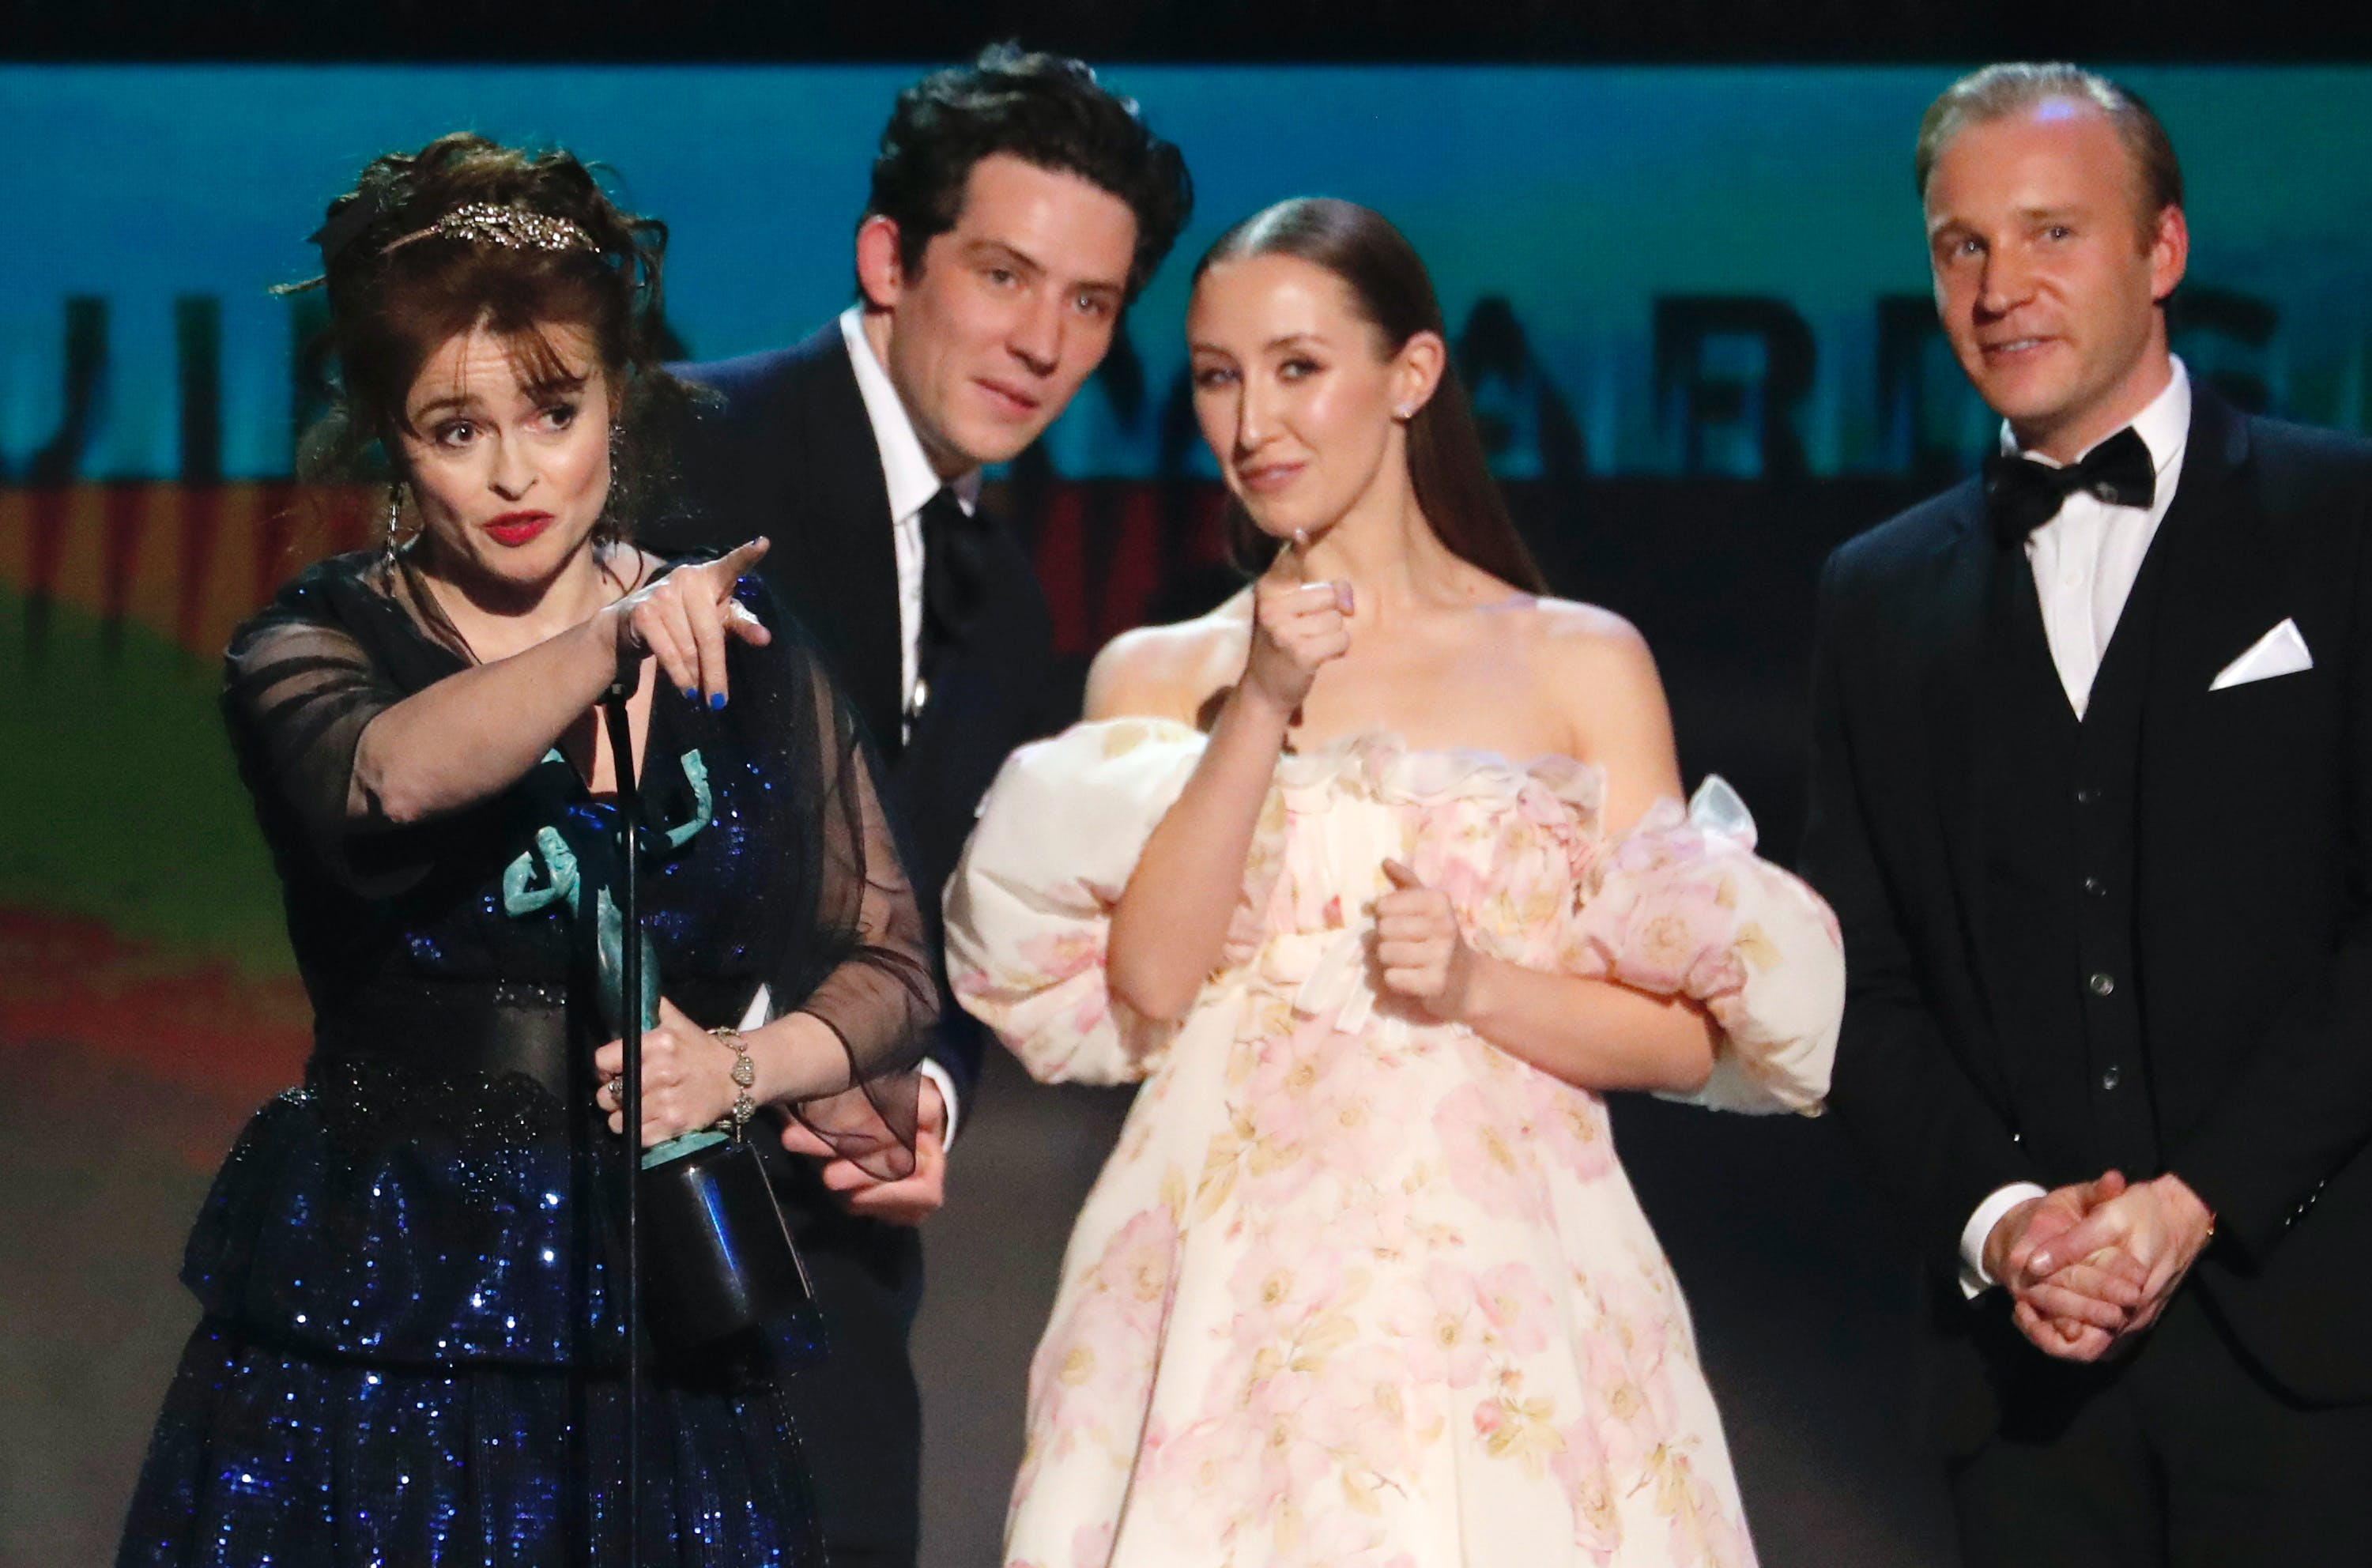 The Crown and Schitt's Creek led the contenders for the 2021 Golden Globes in TV. Here, cast members from The Crown, including Helena Bonham Carter, left, Josh O'Connor, Erin Doherty and Tobias Menzies accept the award for Outstanding Performance by an Ensemble in a Drama Series at the 26th Screen Actors Guild Awards in January 2020. - REUTERS/Mario Anzuoni